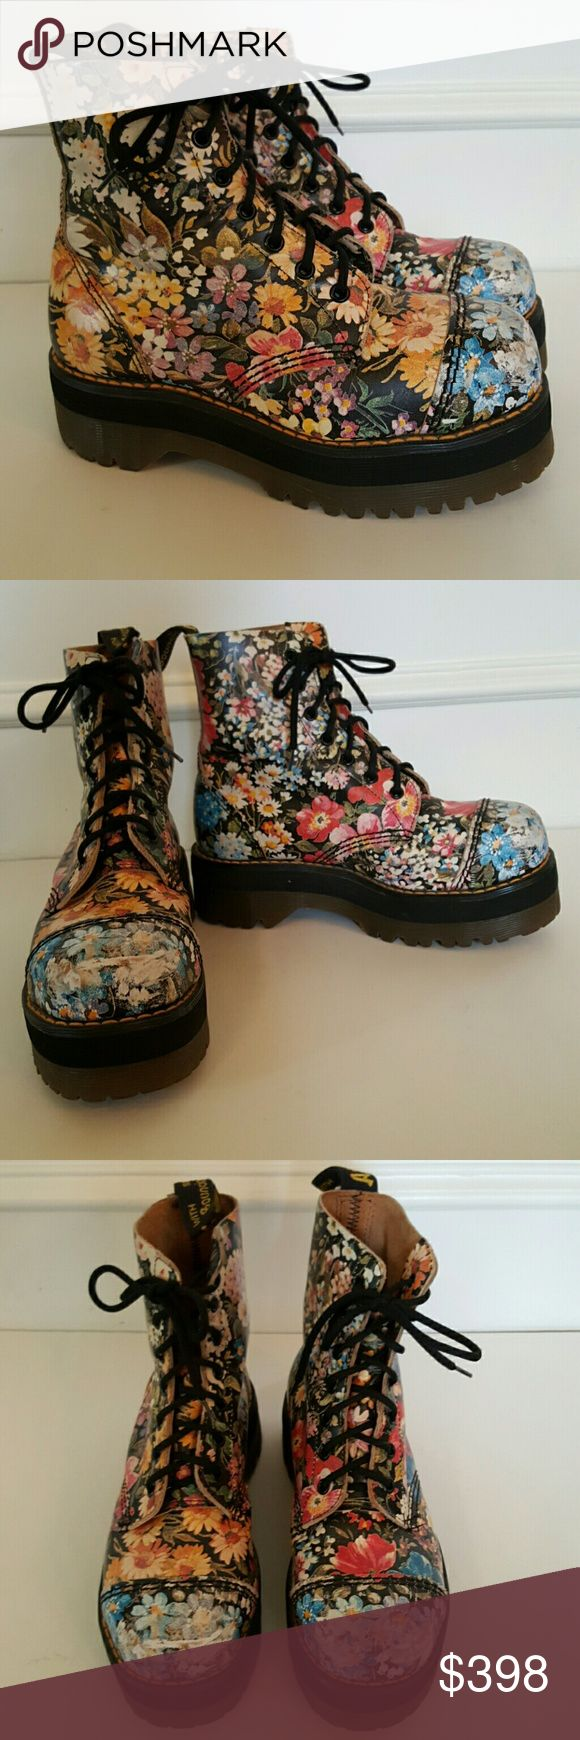 AH-MAZING! Dr. Martens Vintage Floral Combat Boots These are the like holy grail of Docs. These incredible vintage Made in England Dr. Martens are super-duper rare. The most sought after grunge floral print combined with a platform sole like the Agyness Deyn and Jadon styles. I believe they are steel toe as the toes are hard and dont flex. They are in excellent pre-owned condition. Just some scuffing and scratches on the tips of the toes which blur the floral pattern but mostly hasn't yet…